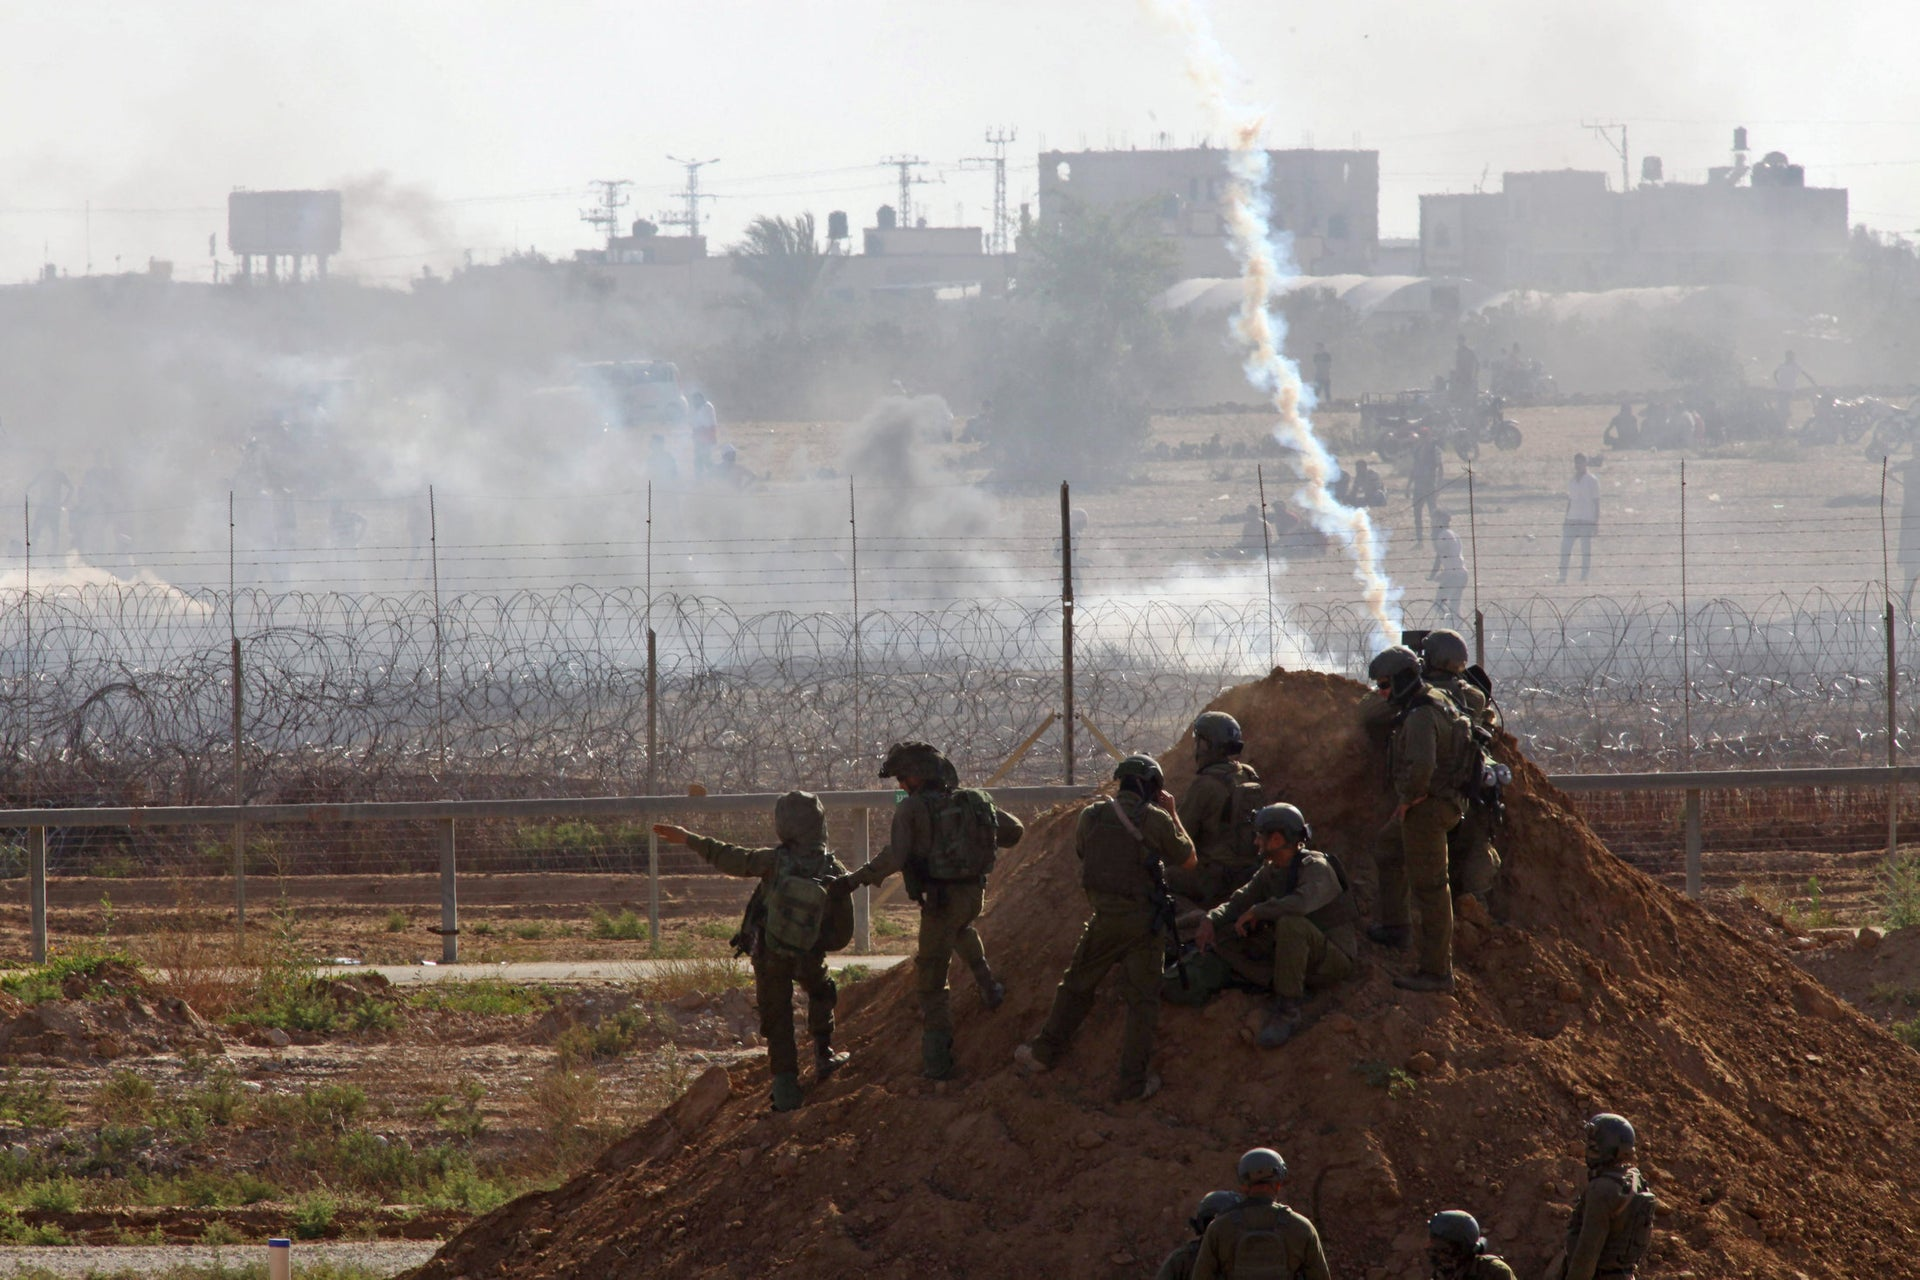 Israeli soldiers and Gaza protesters face off on the border, June 2018.